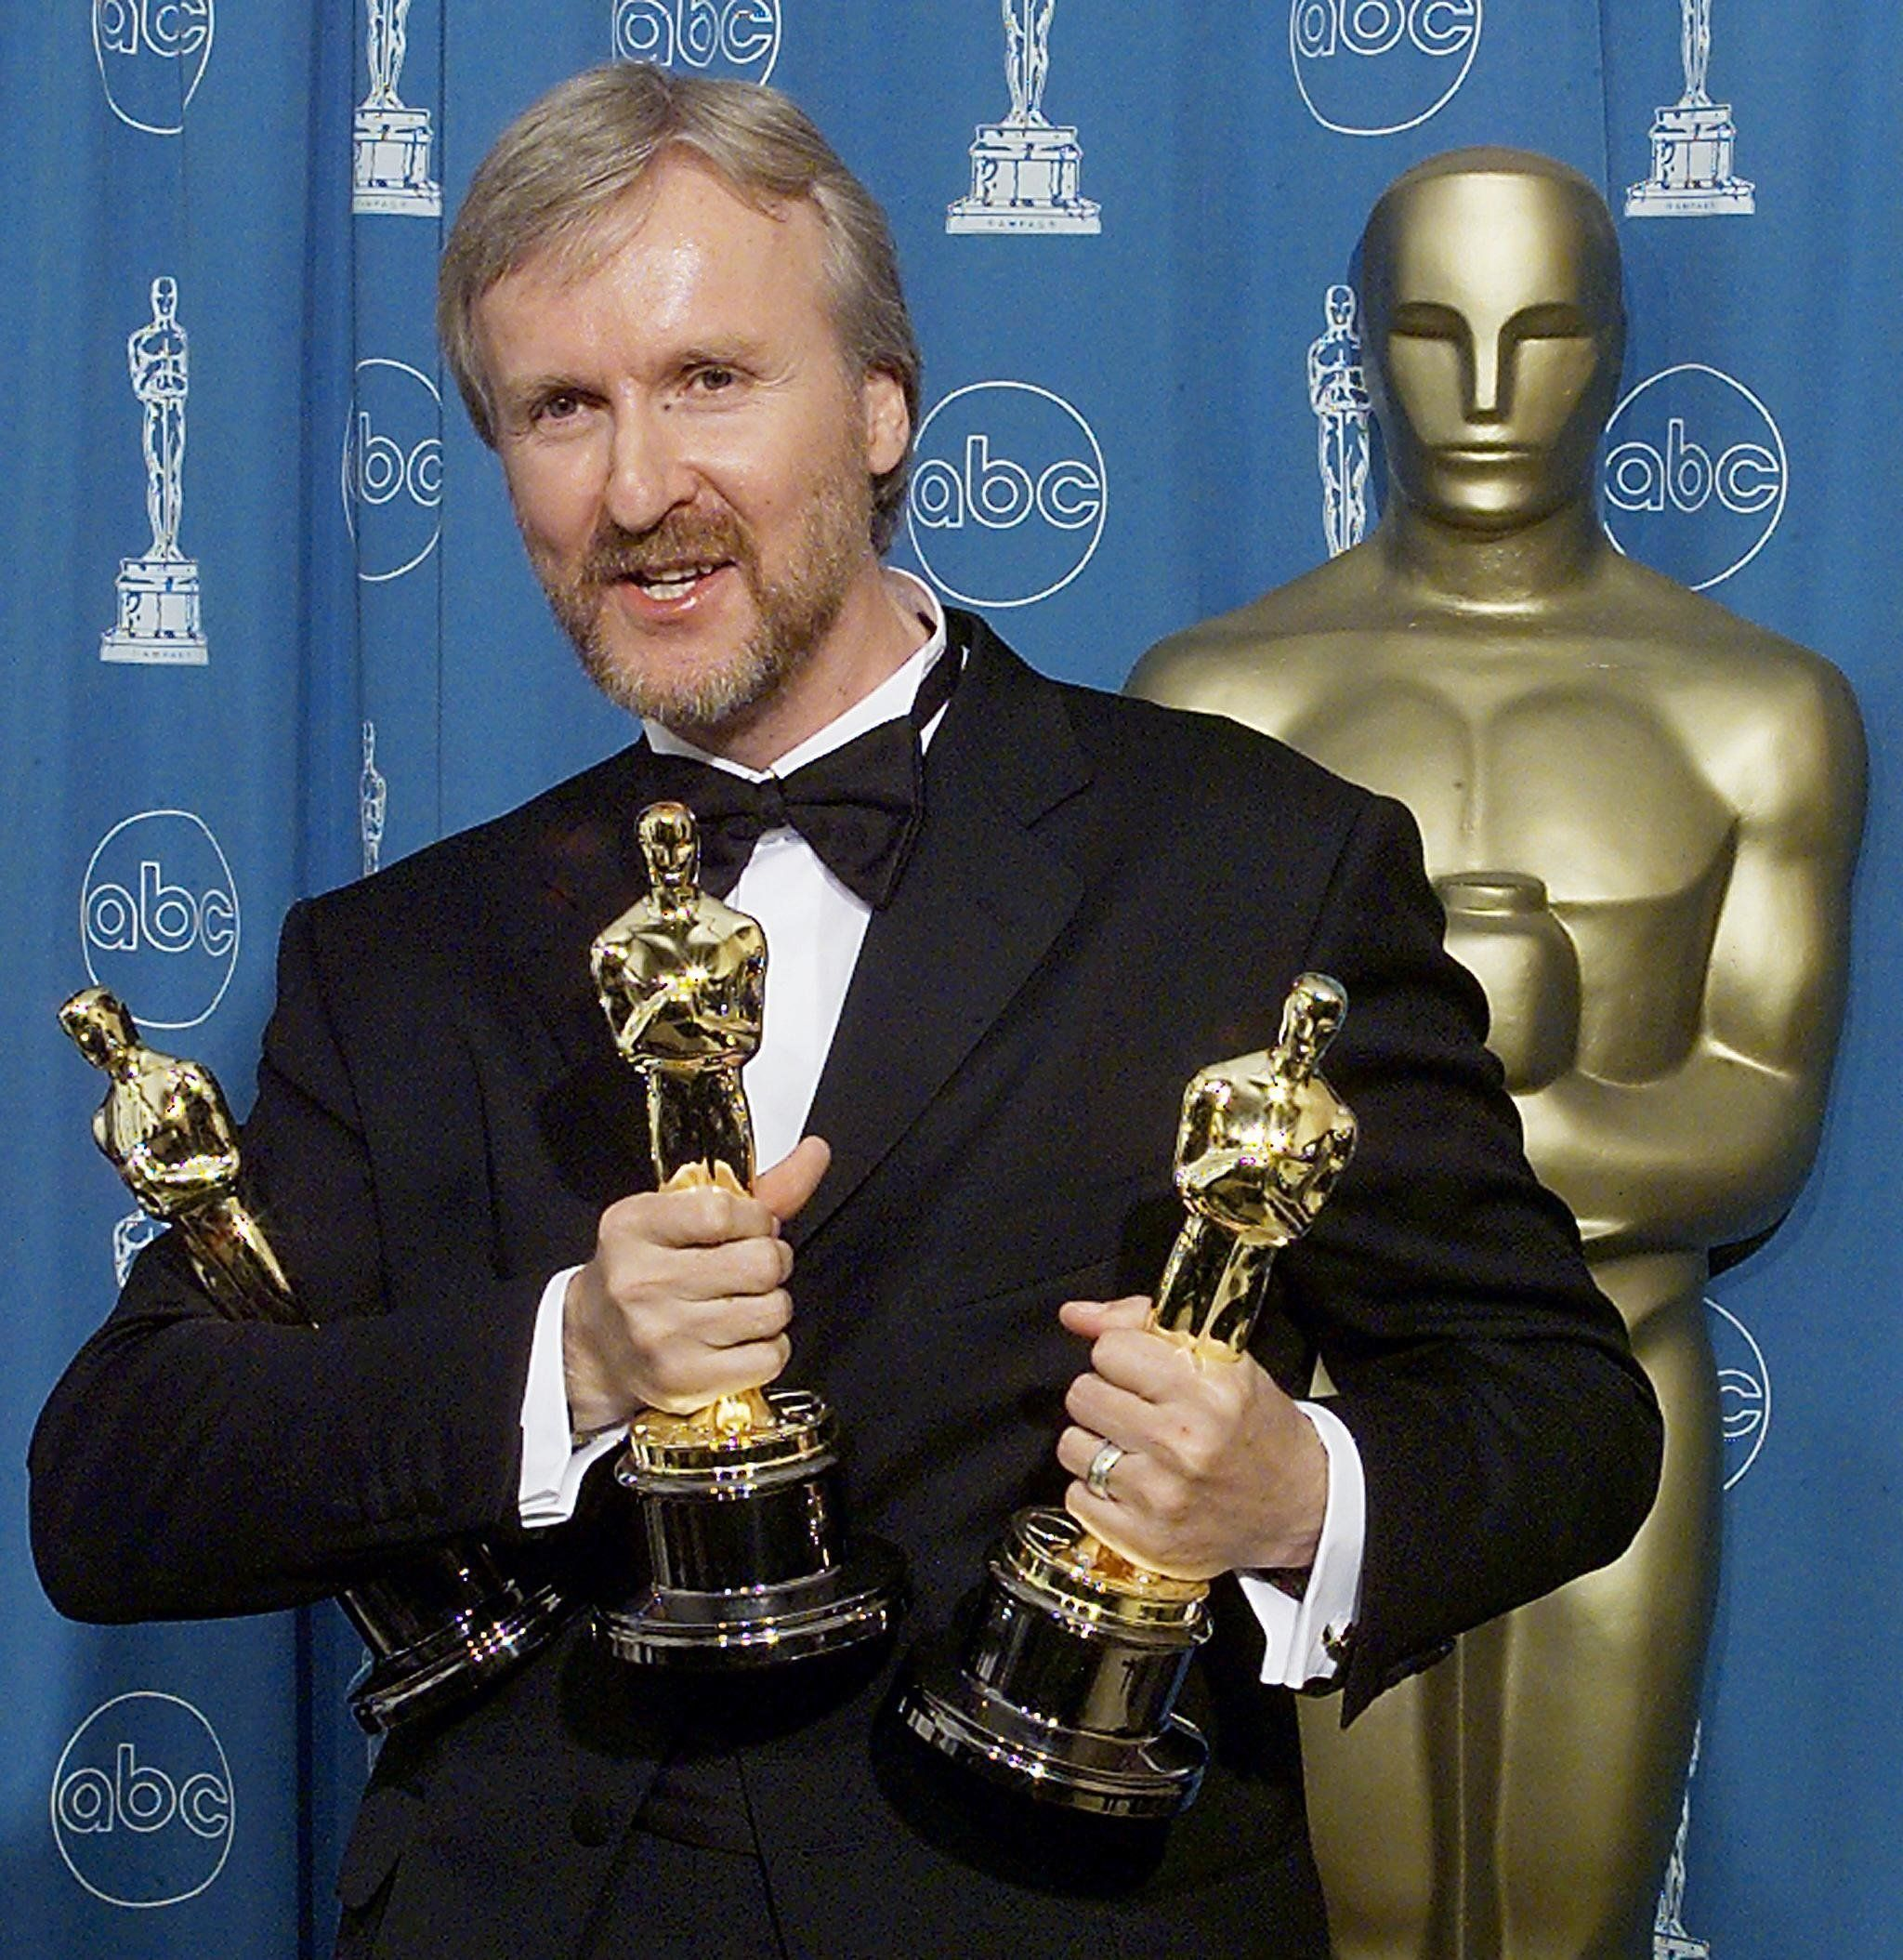 'Titanic' Director James Cameron Reveals He 'Almost Hit Weinstein With His Oscar' At The 1998